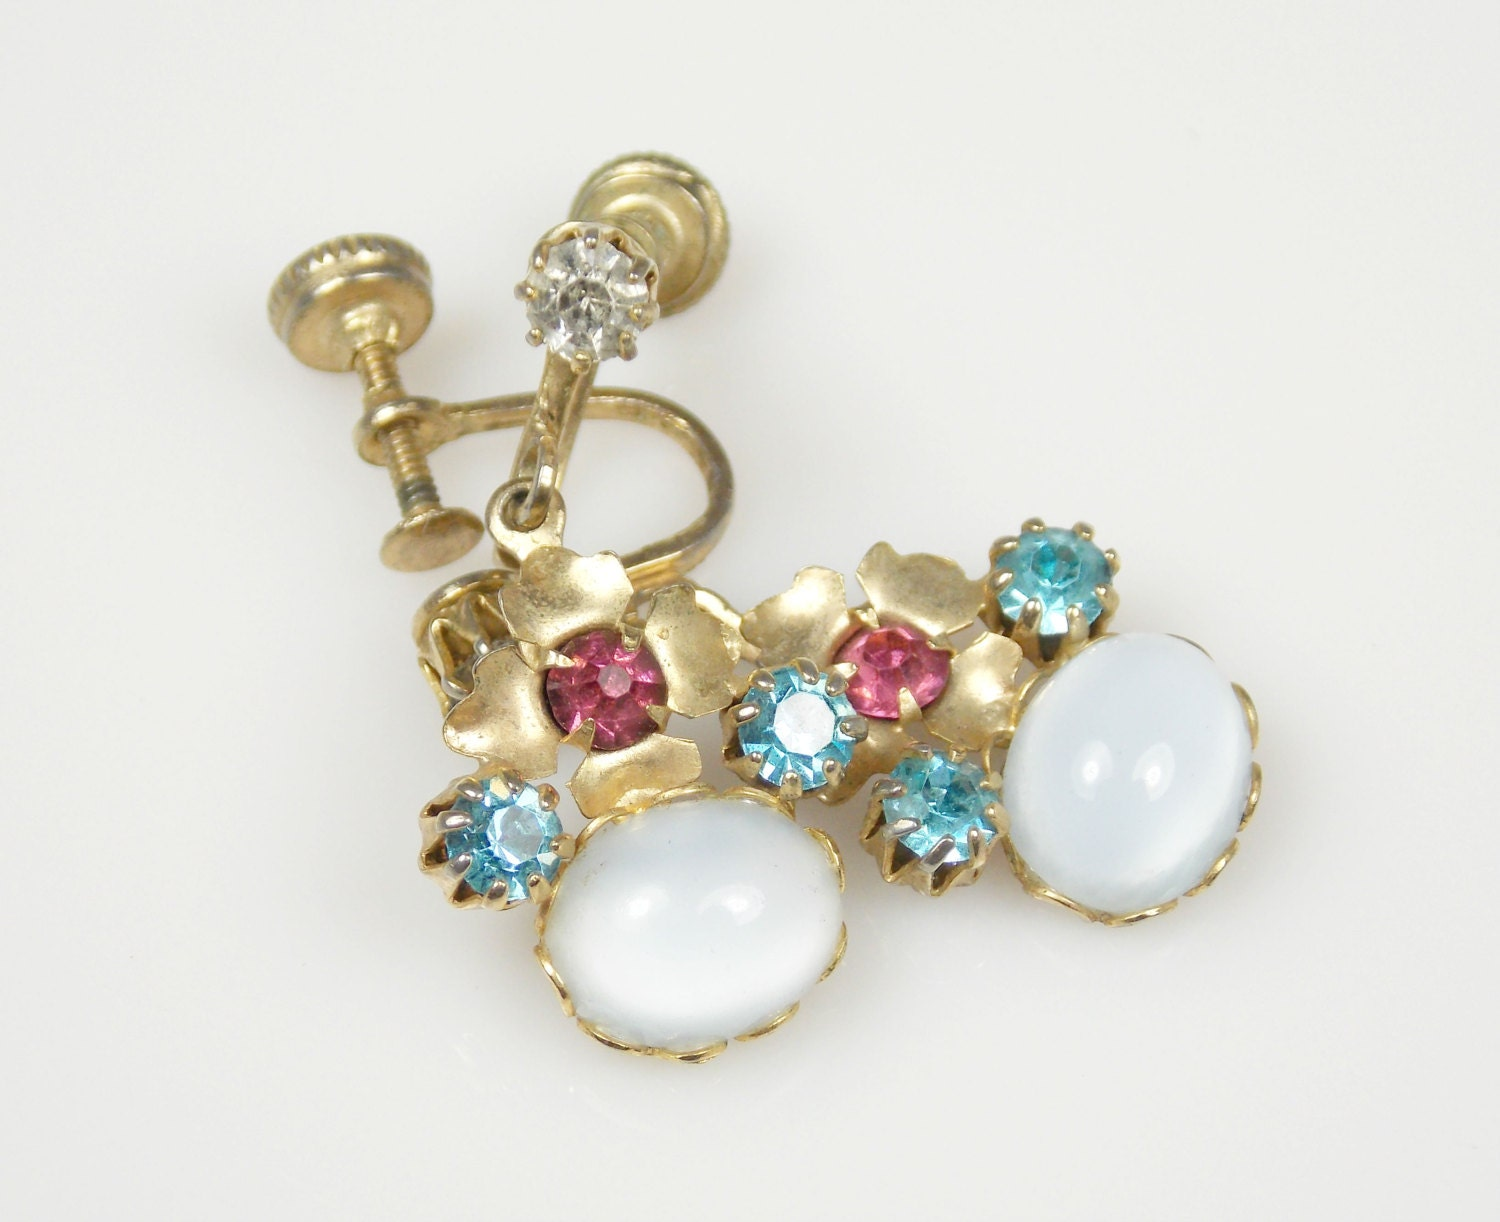 pink moonstone jewelry vintage - photo #16